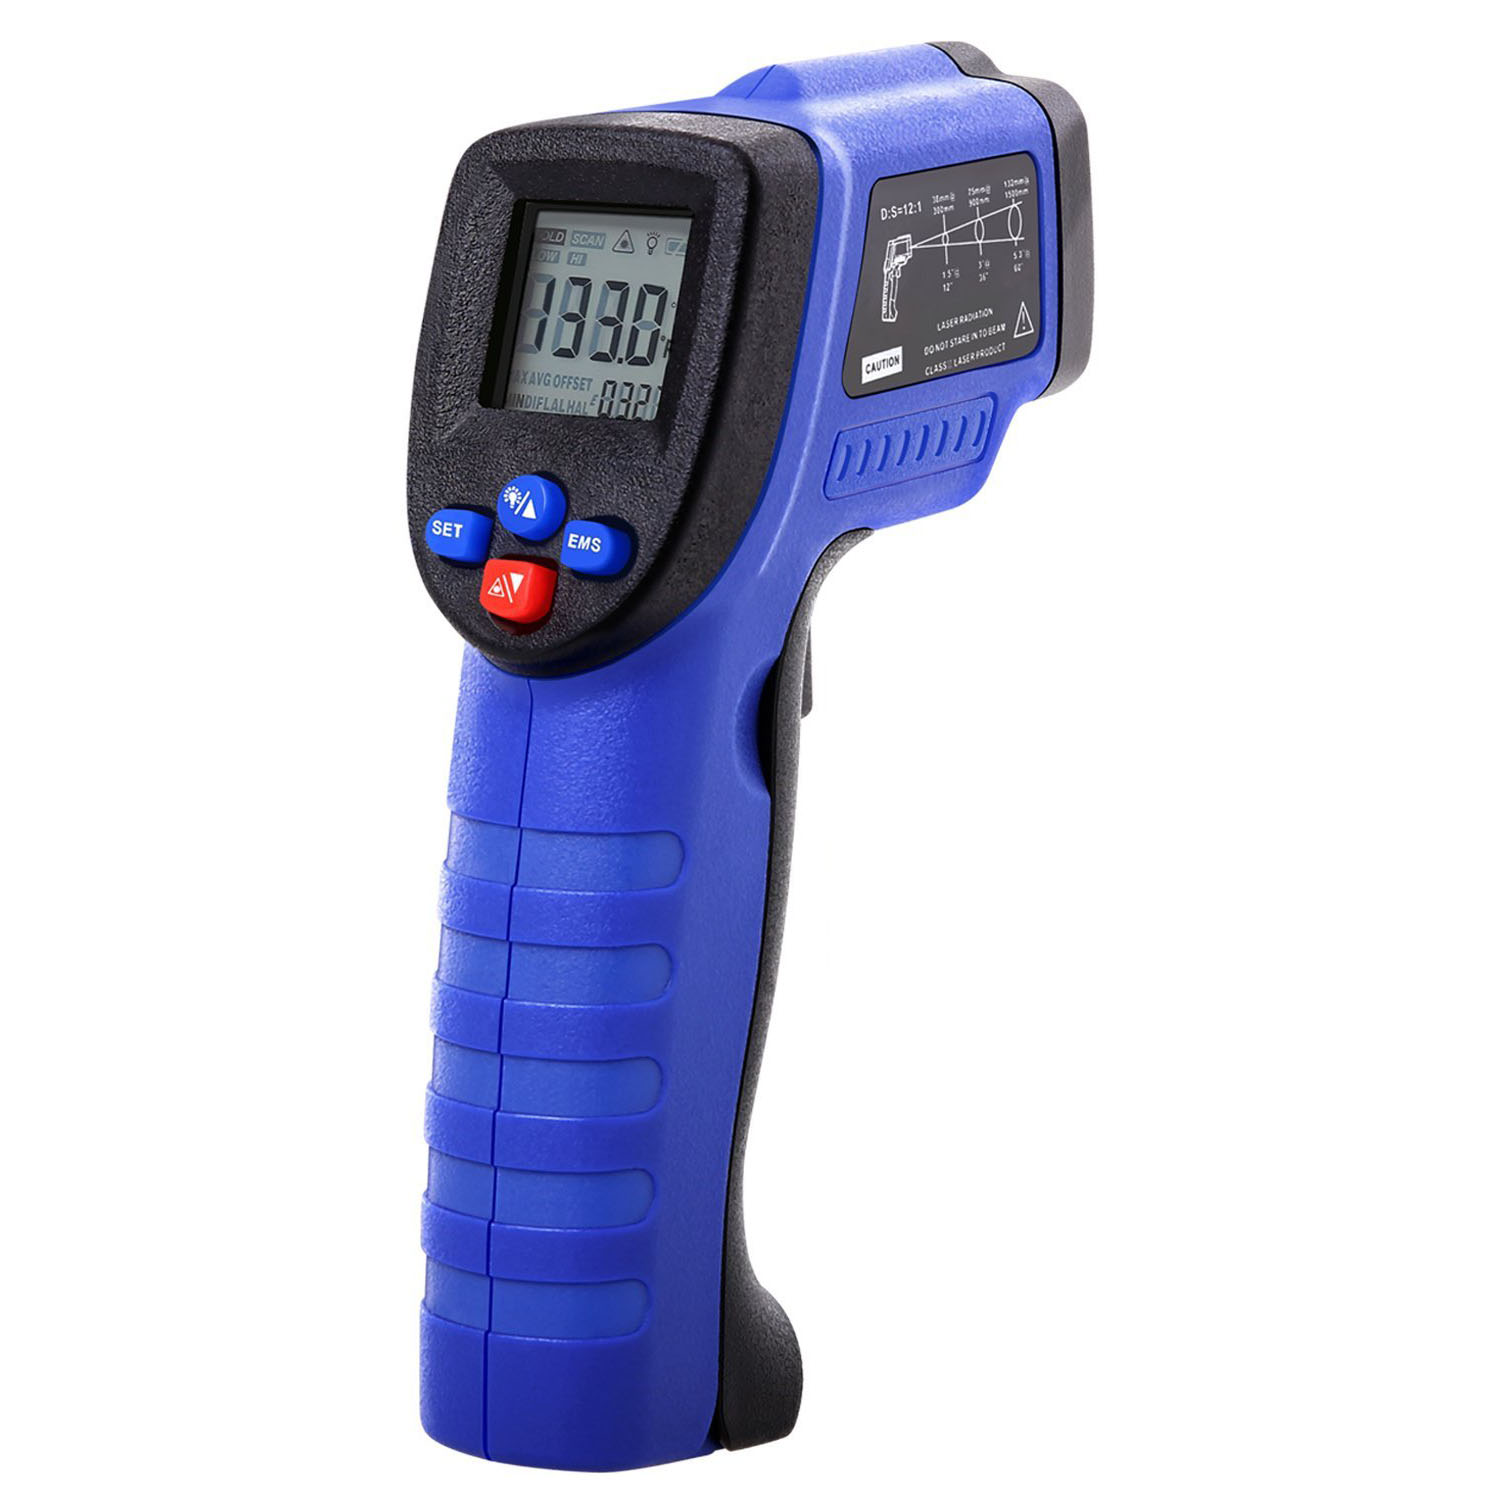 Koeson Professional Non-Contact Digital Laser Infrared Thermometer